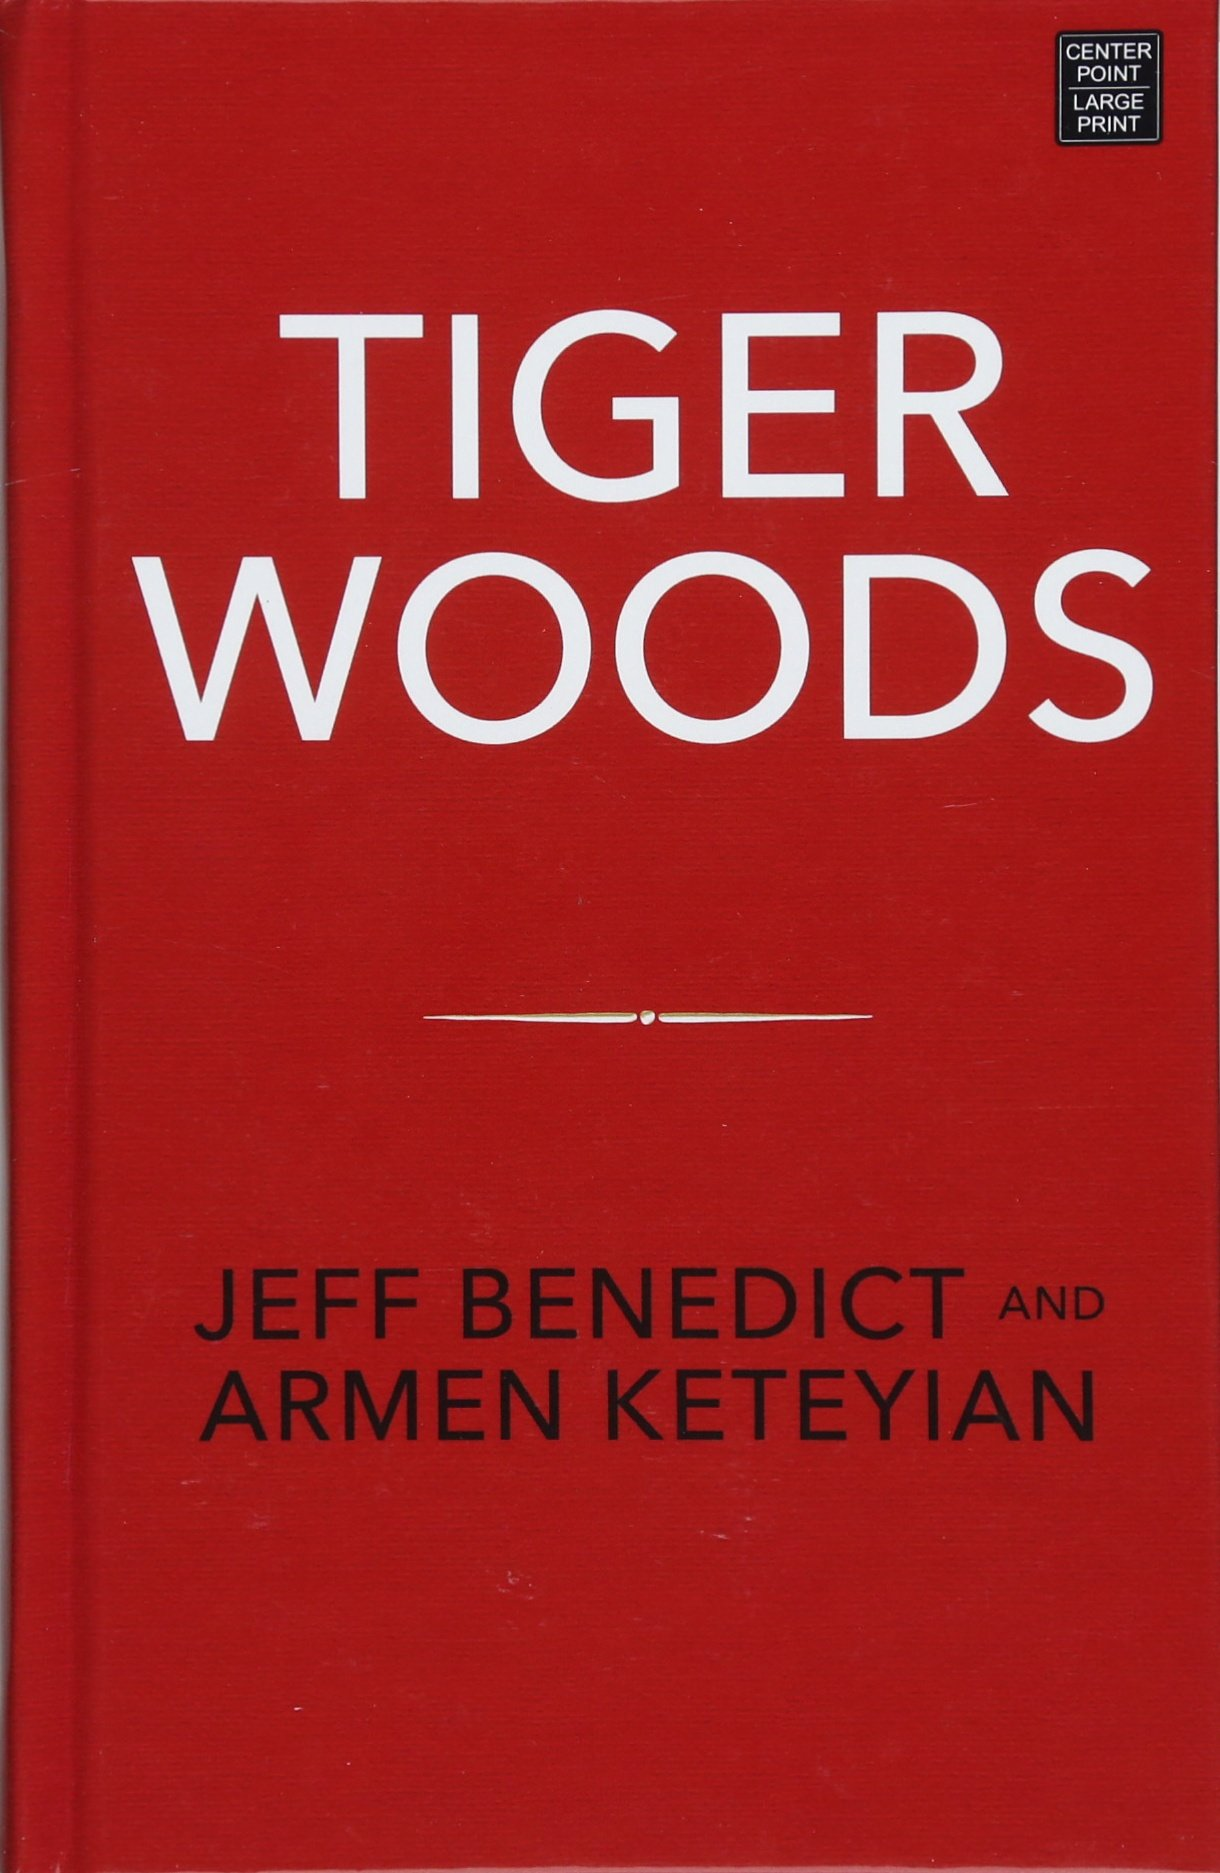 Tiger Woods: Amazon.co.uk: Benedict, Jeff, Keteyian, Armen: 9781683248118:  Books